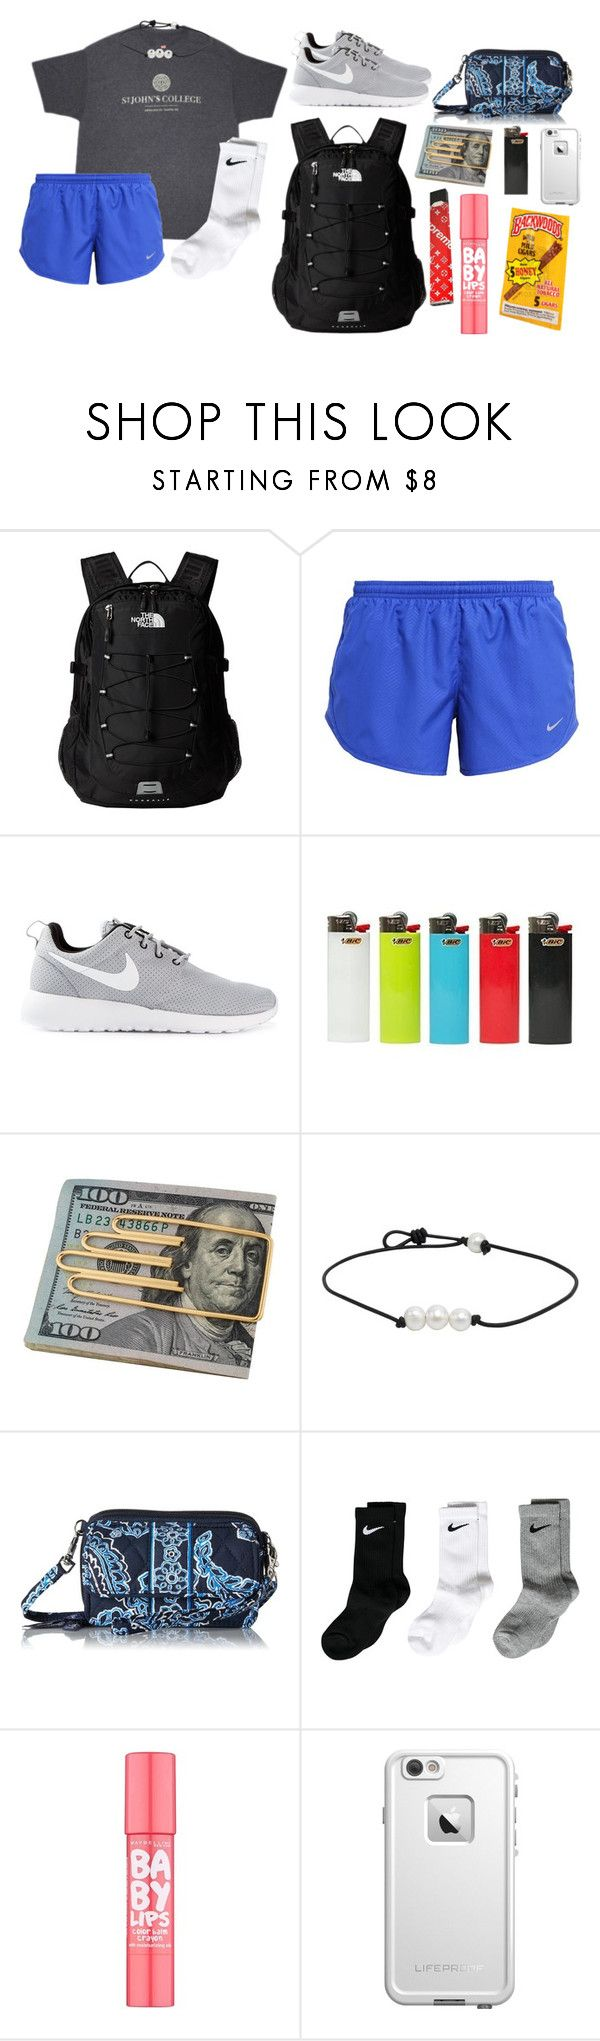 """bop"" by pastikamariel on Polyvore featuring St. John, The North Face, NIKE, Cartier, Vera Bradley, Maybelline and LifeProof"